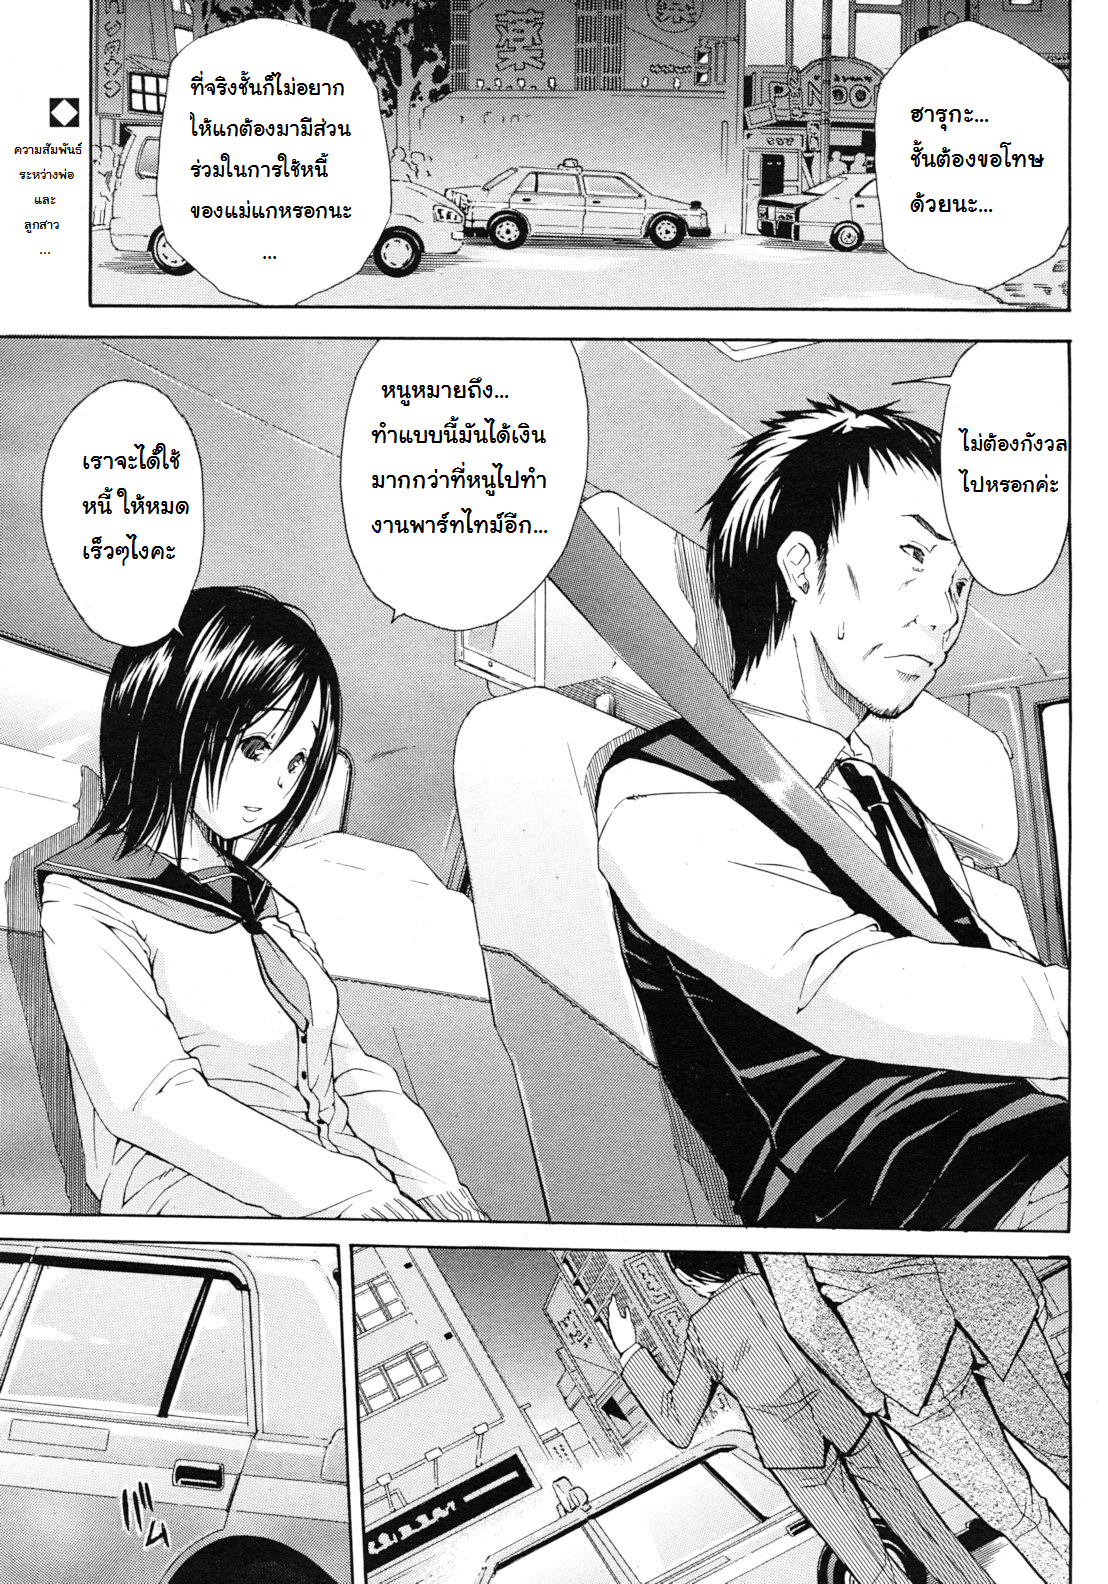 [Chiyou Yoyuchi] Shanai wa Inbina Kaori | The Lewd Scent in the Car (COMIC MUJIN 2012-03) [Thai ภาษาไทย]